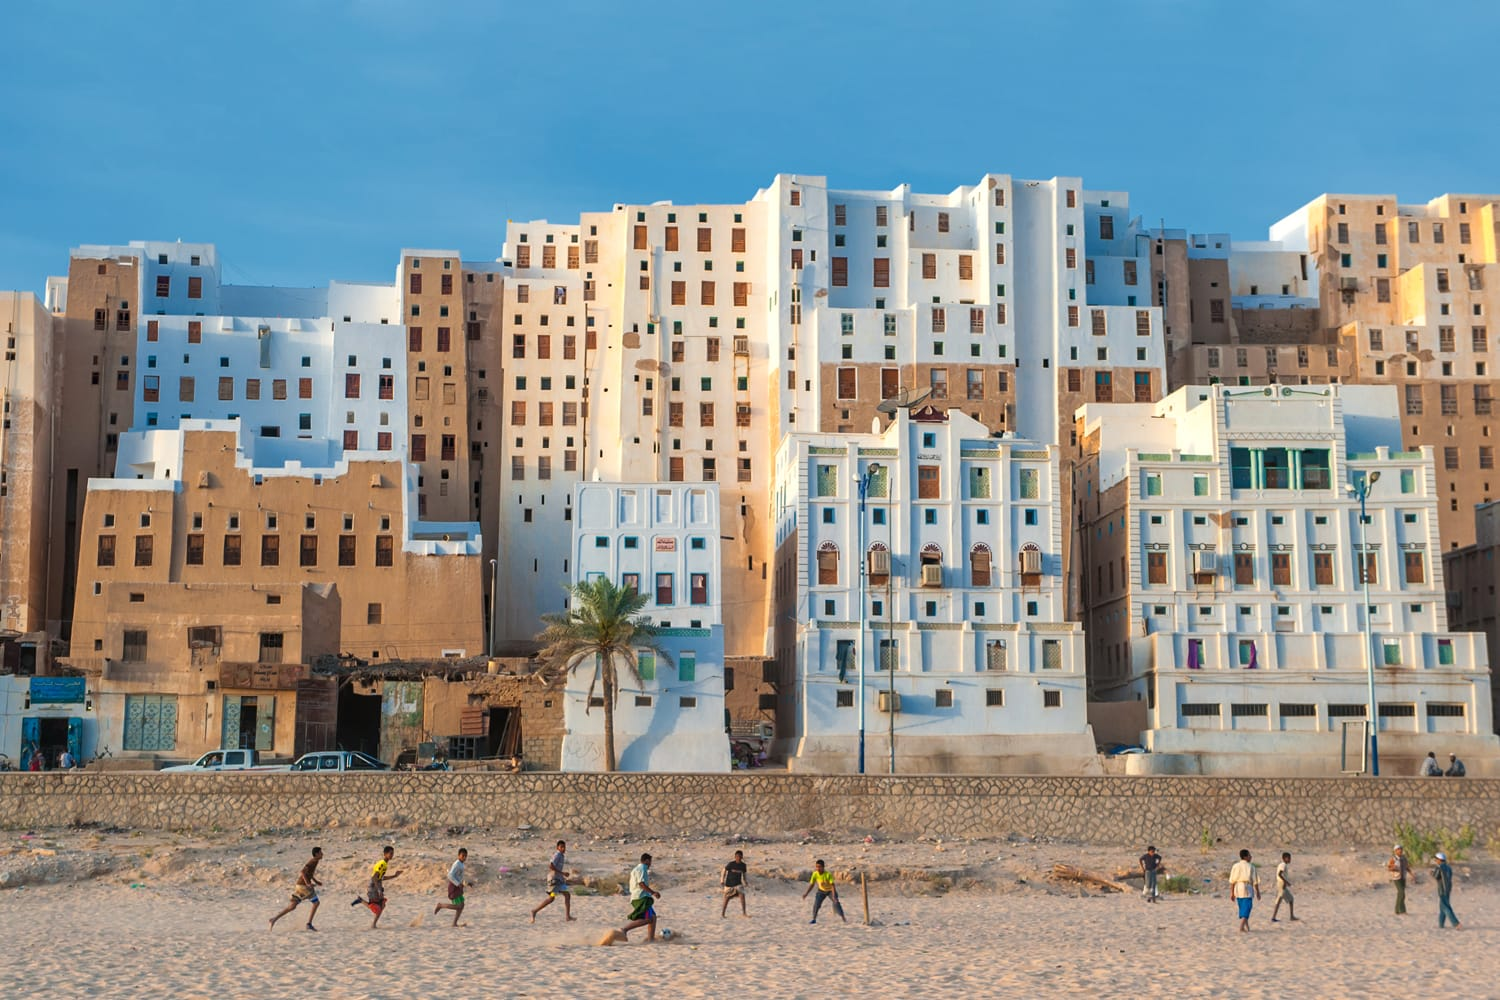 Yemeni boys playing soccer at Shibam, Hadramaut province, Yemen